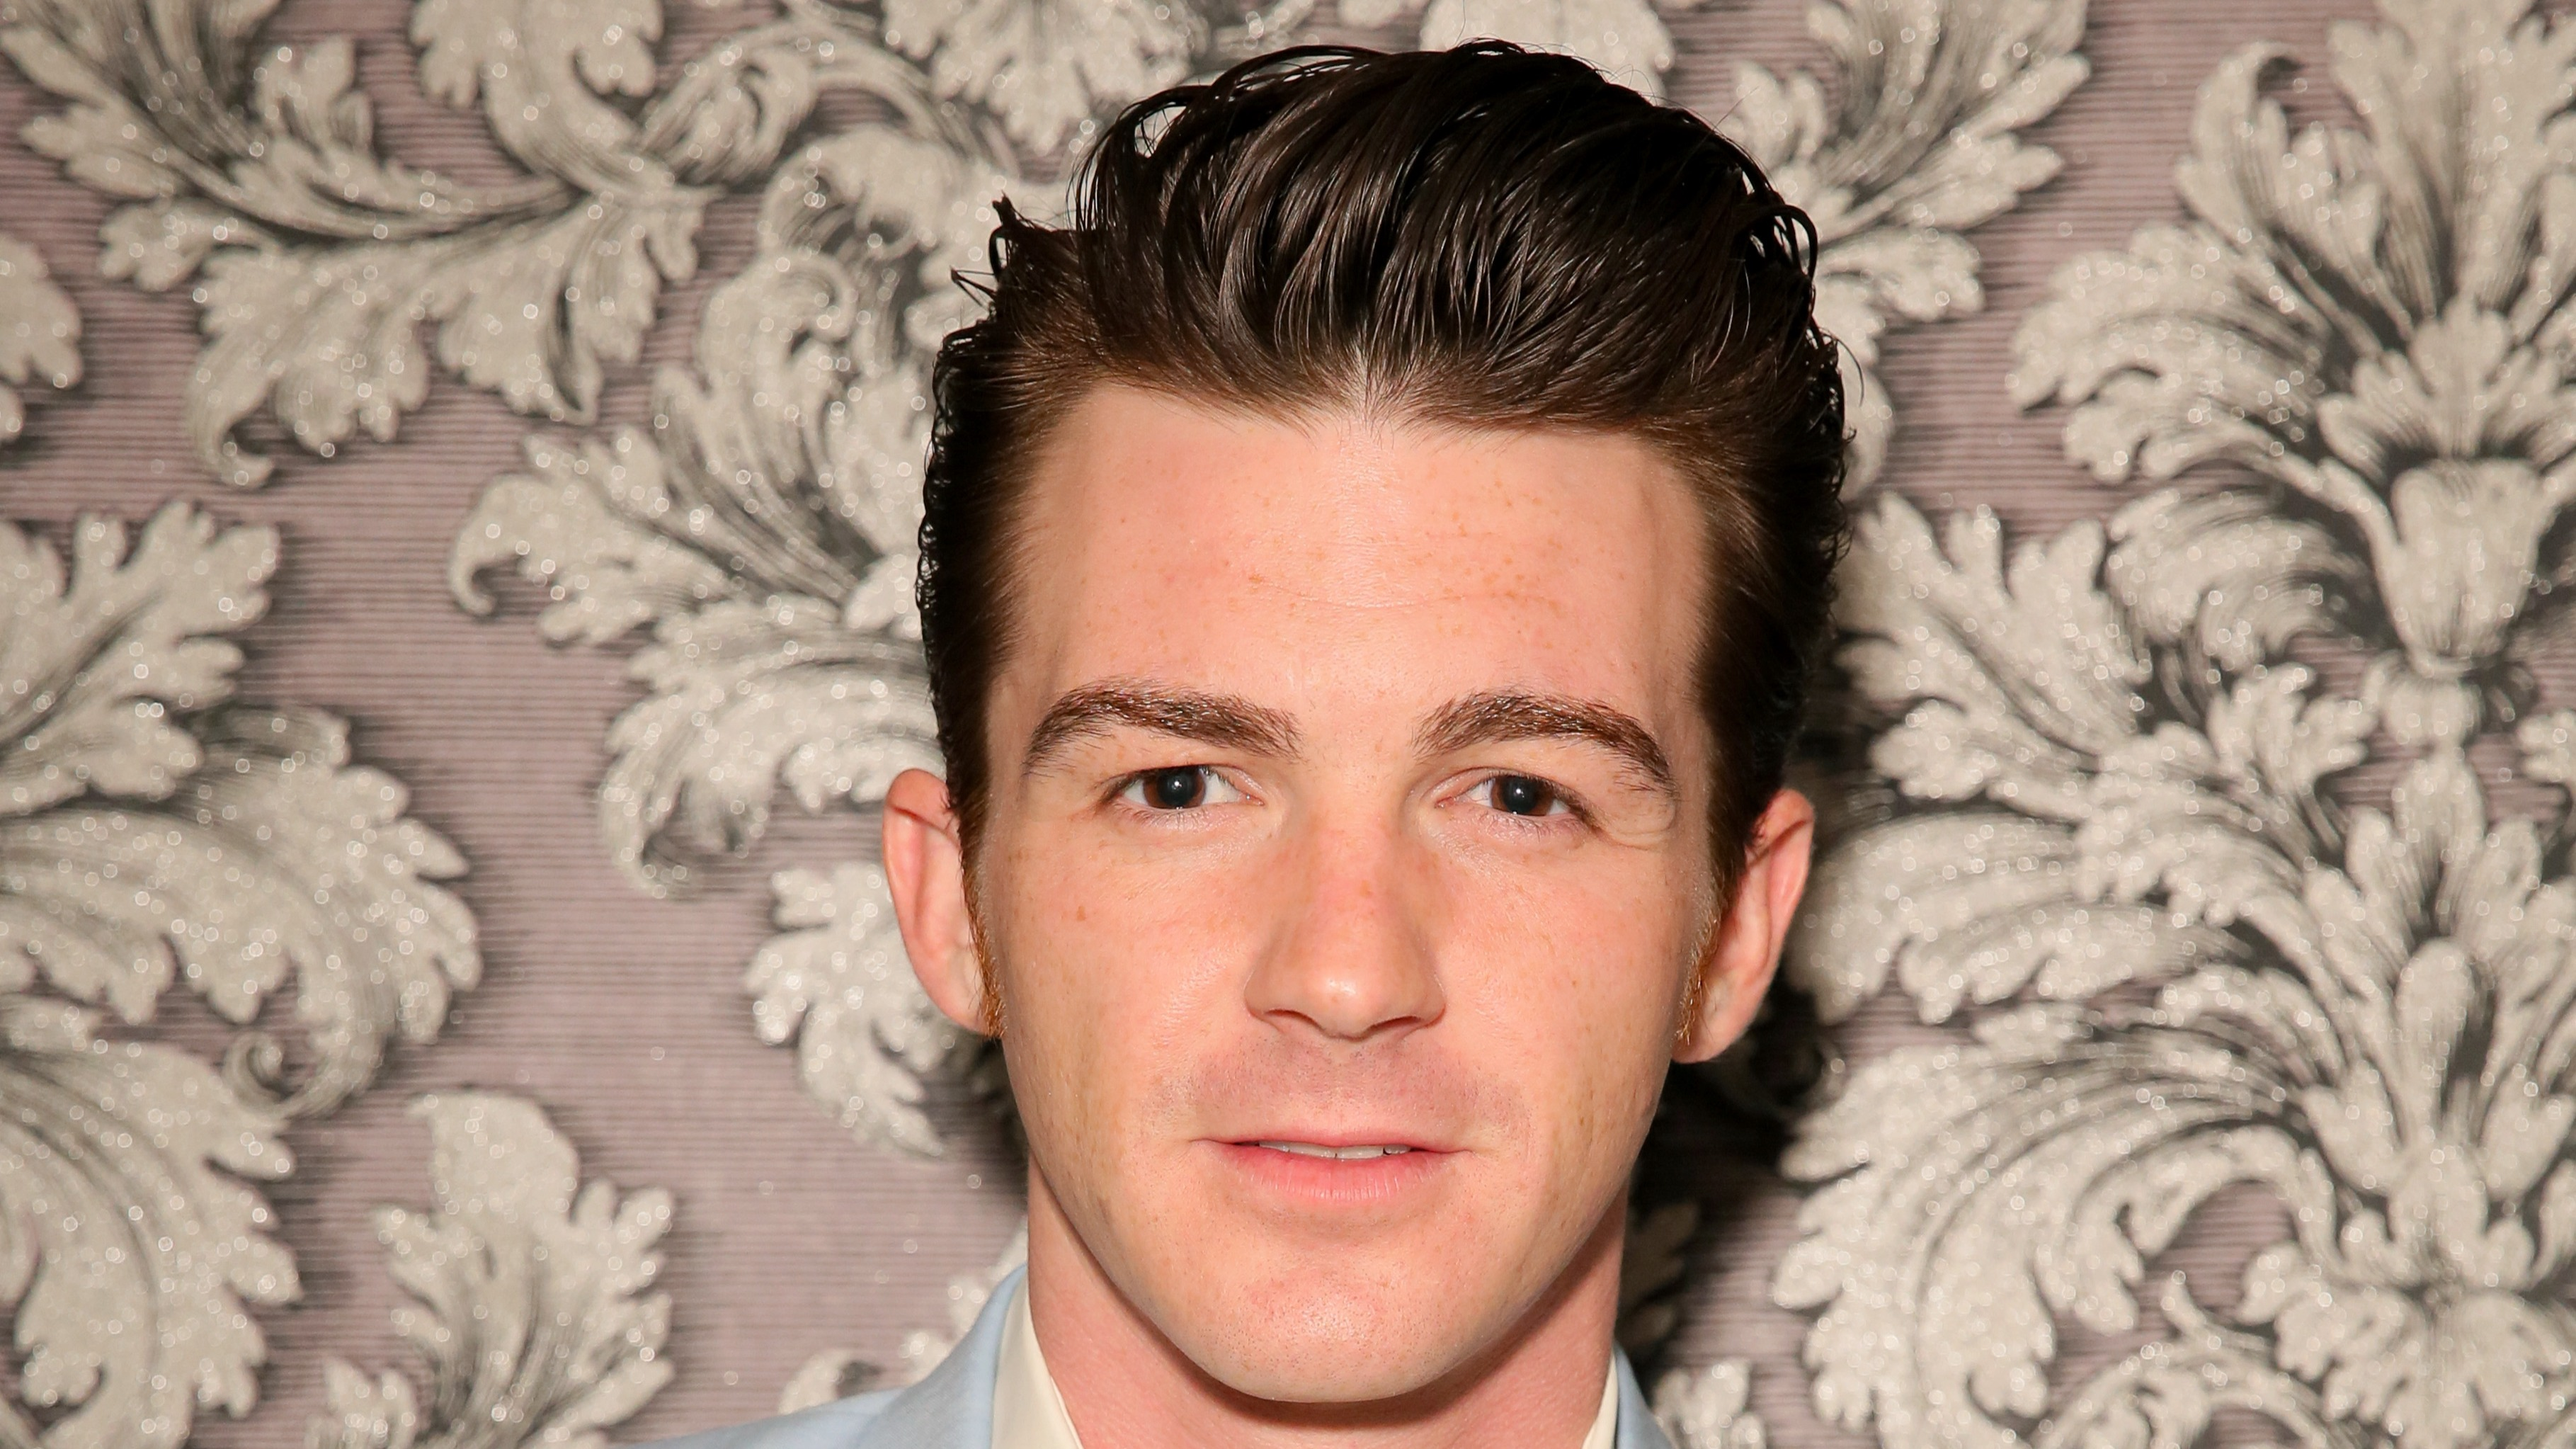 Former Nickelodeon Star Drake Bell Pleads Guilty To Child Endangerment And Is Convicted